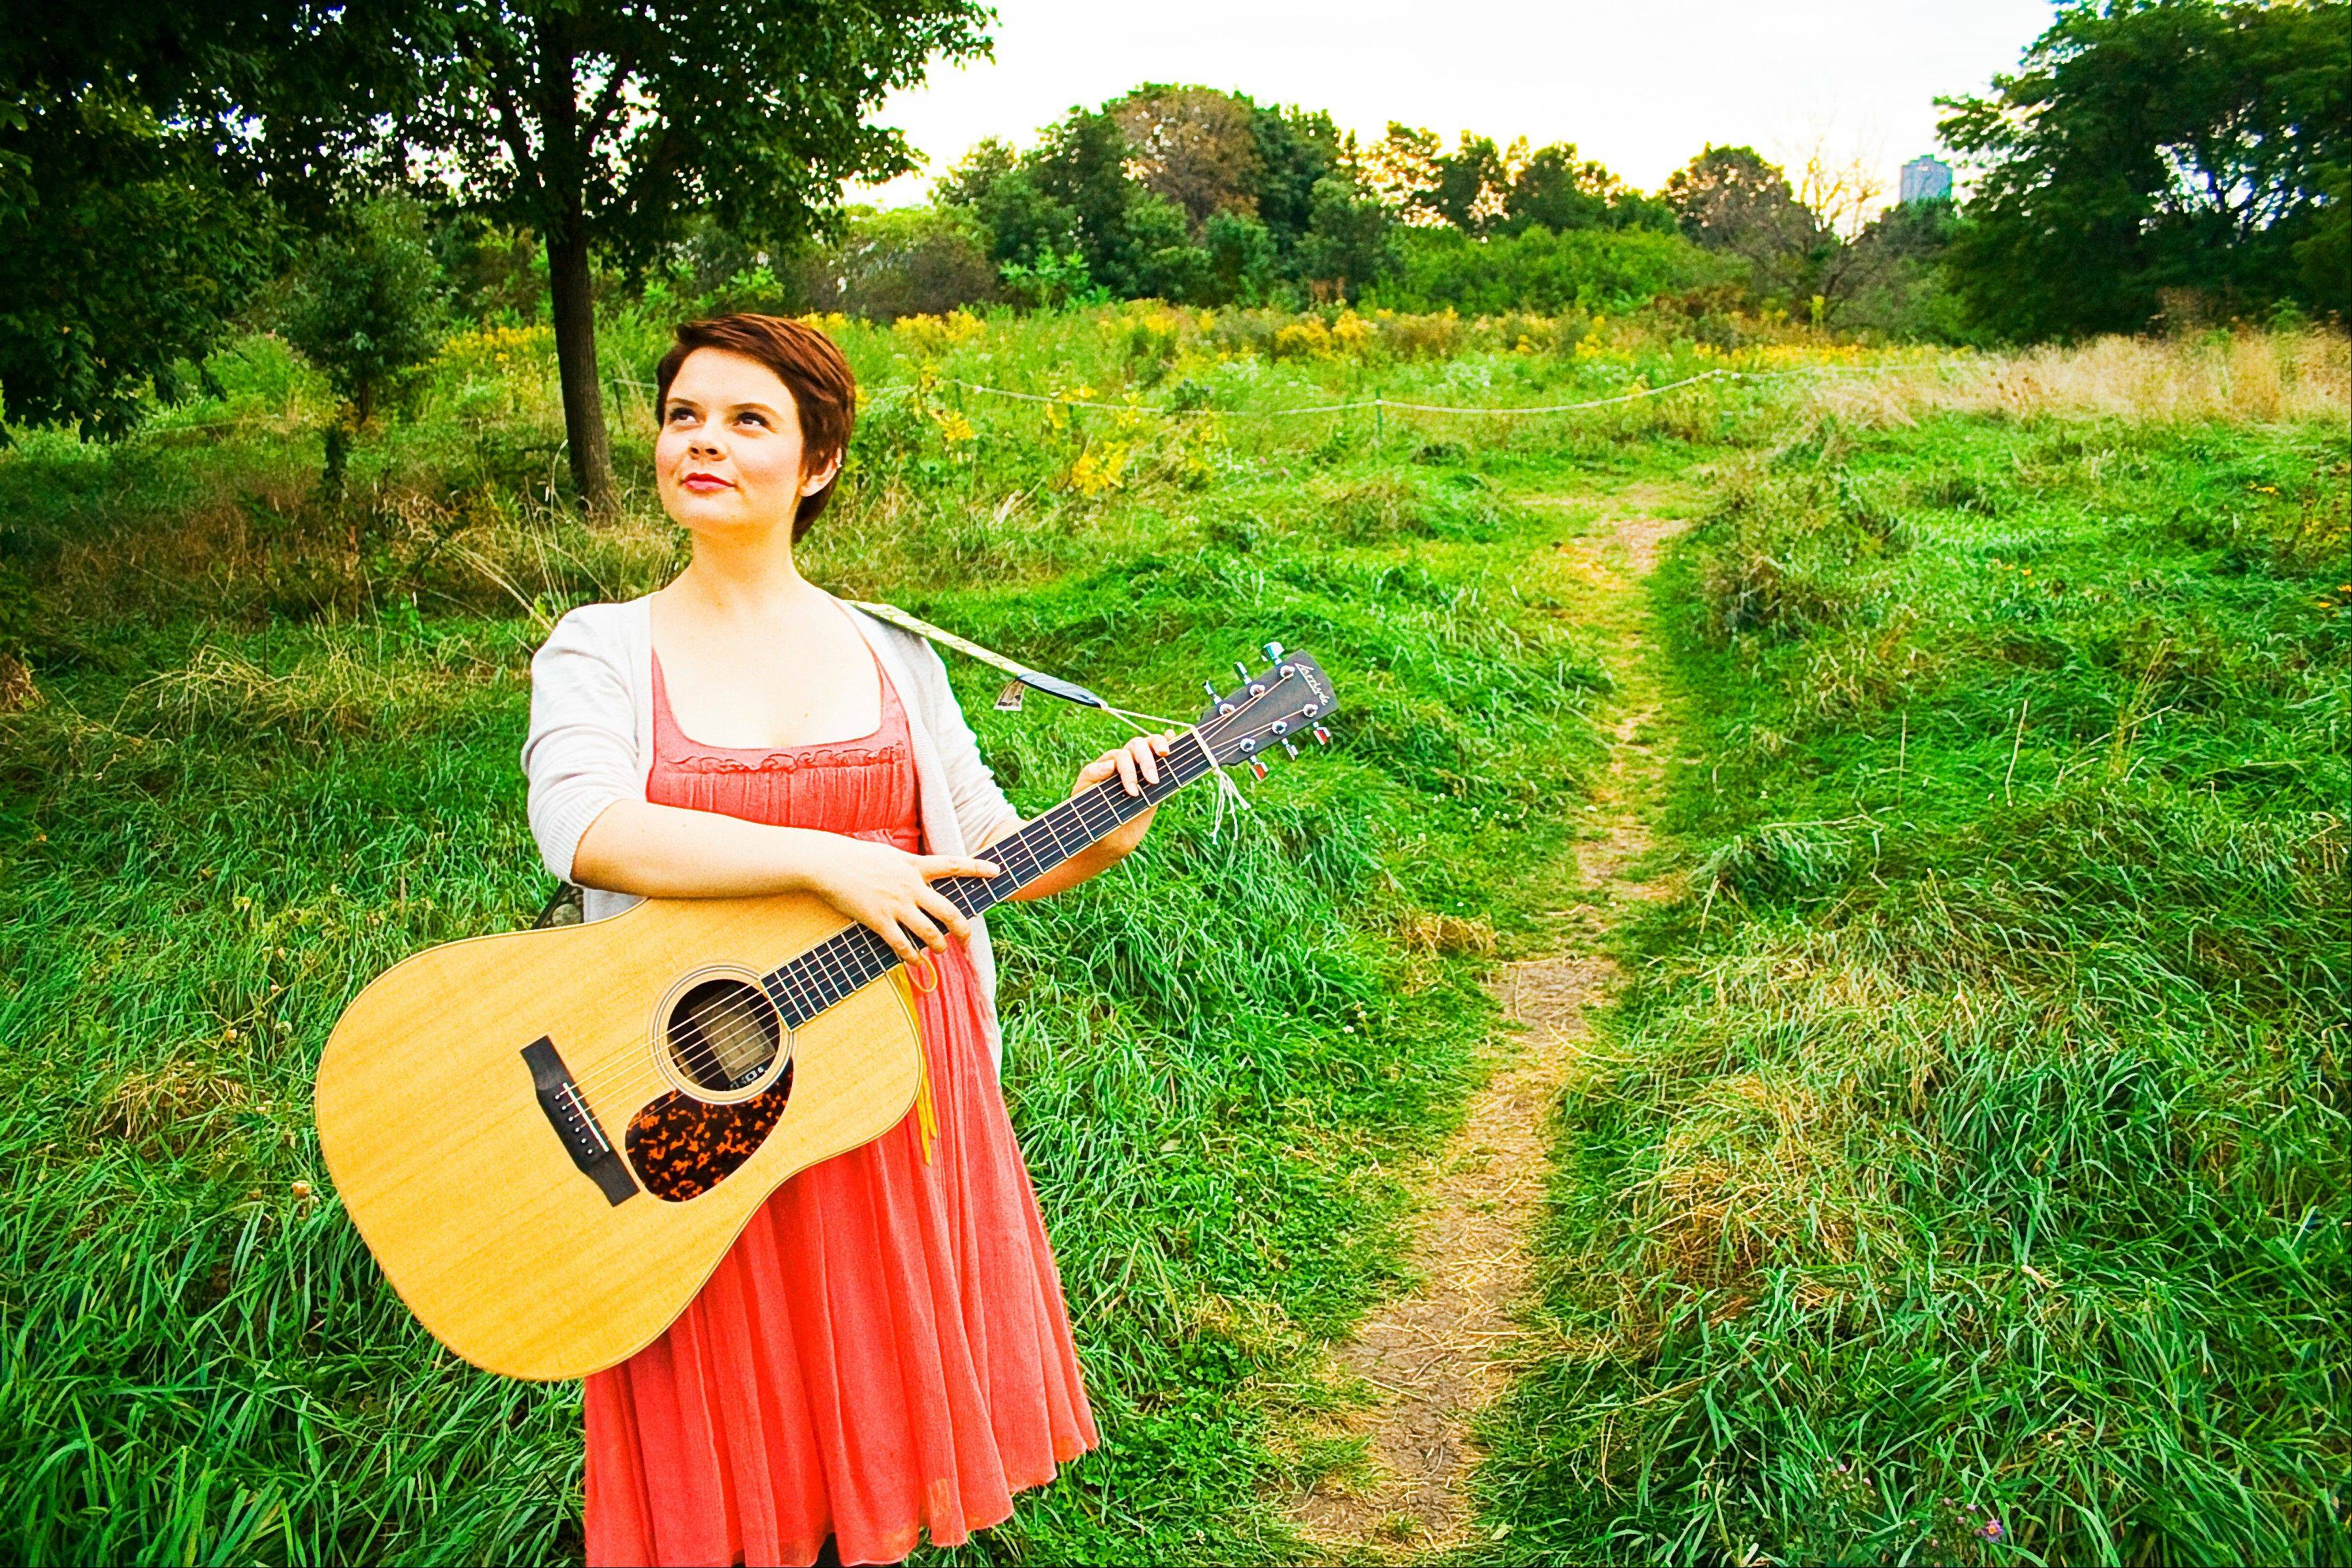 Chicago singer/songwriter Heather Styka headlines the Two Way Street Coffee House in Downers Grove on Friday, Jan. 18.